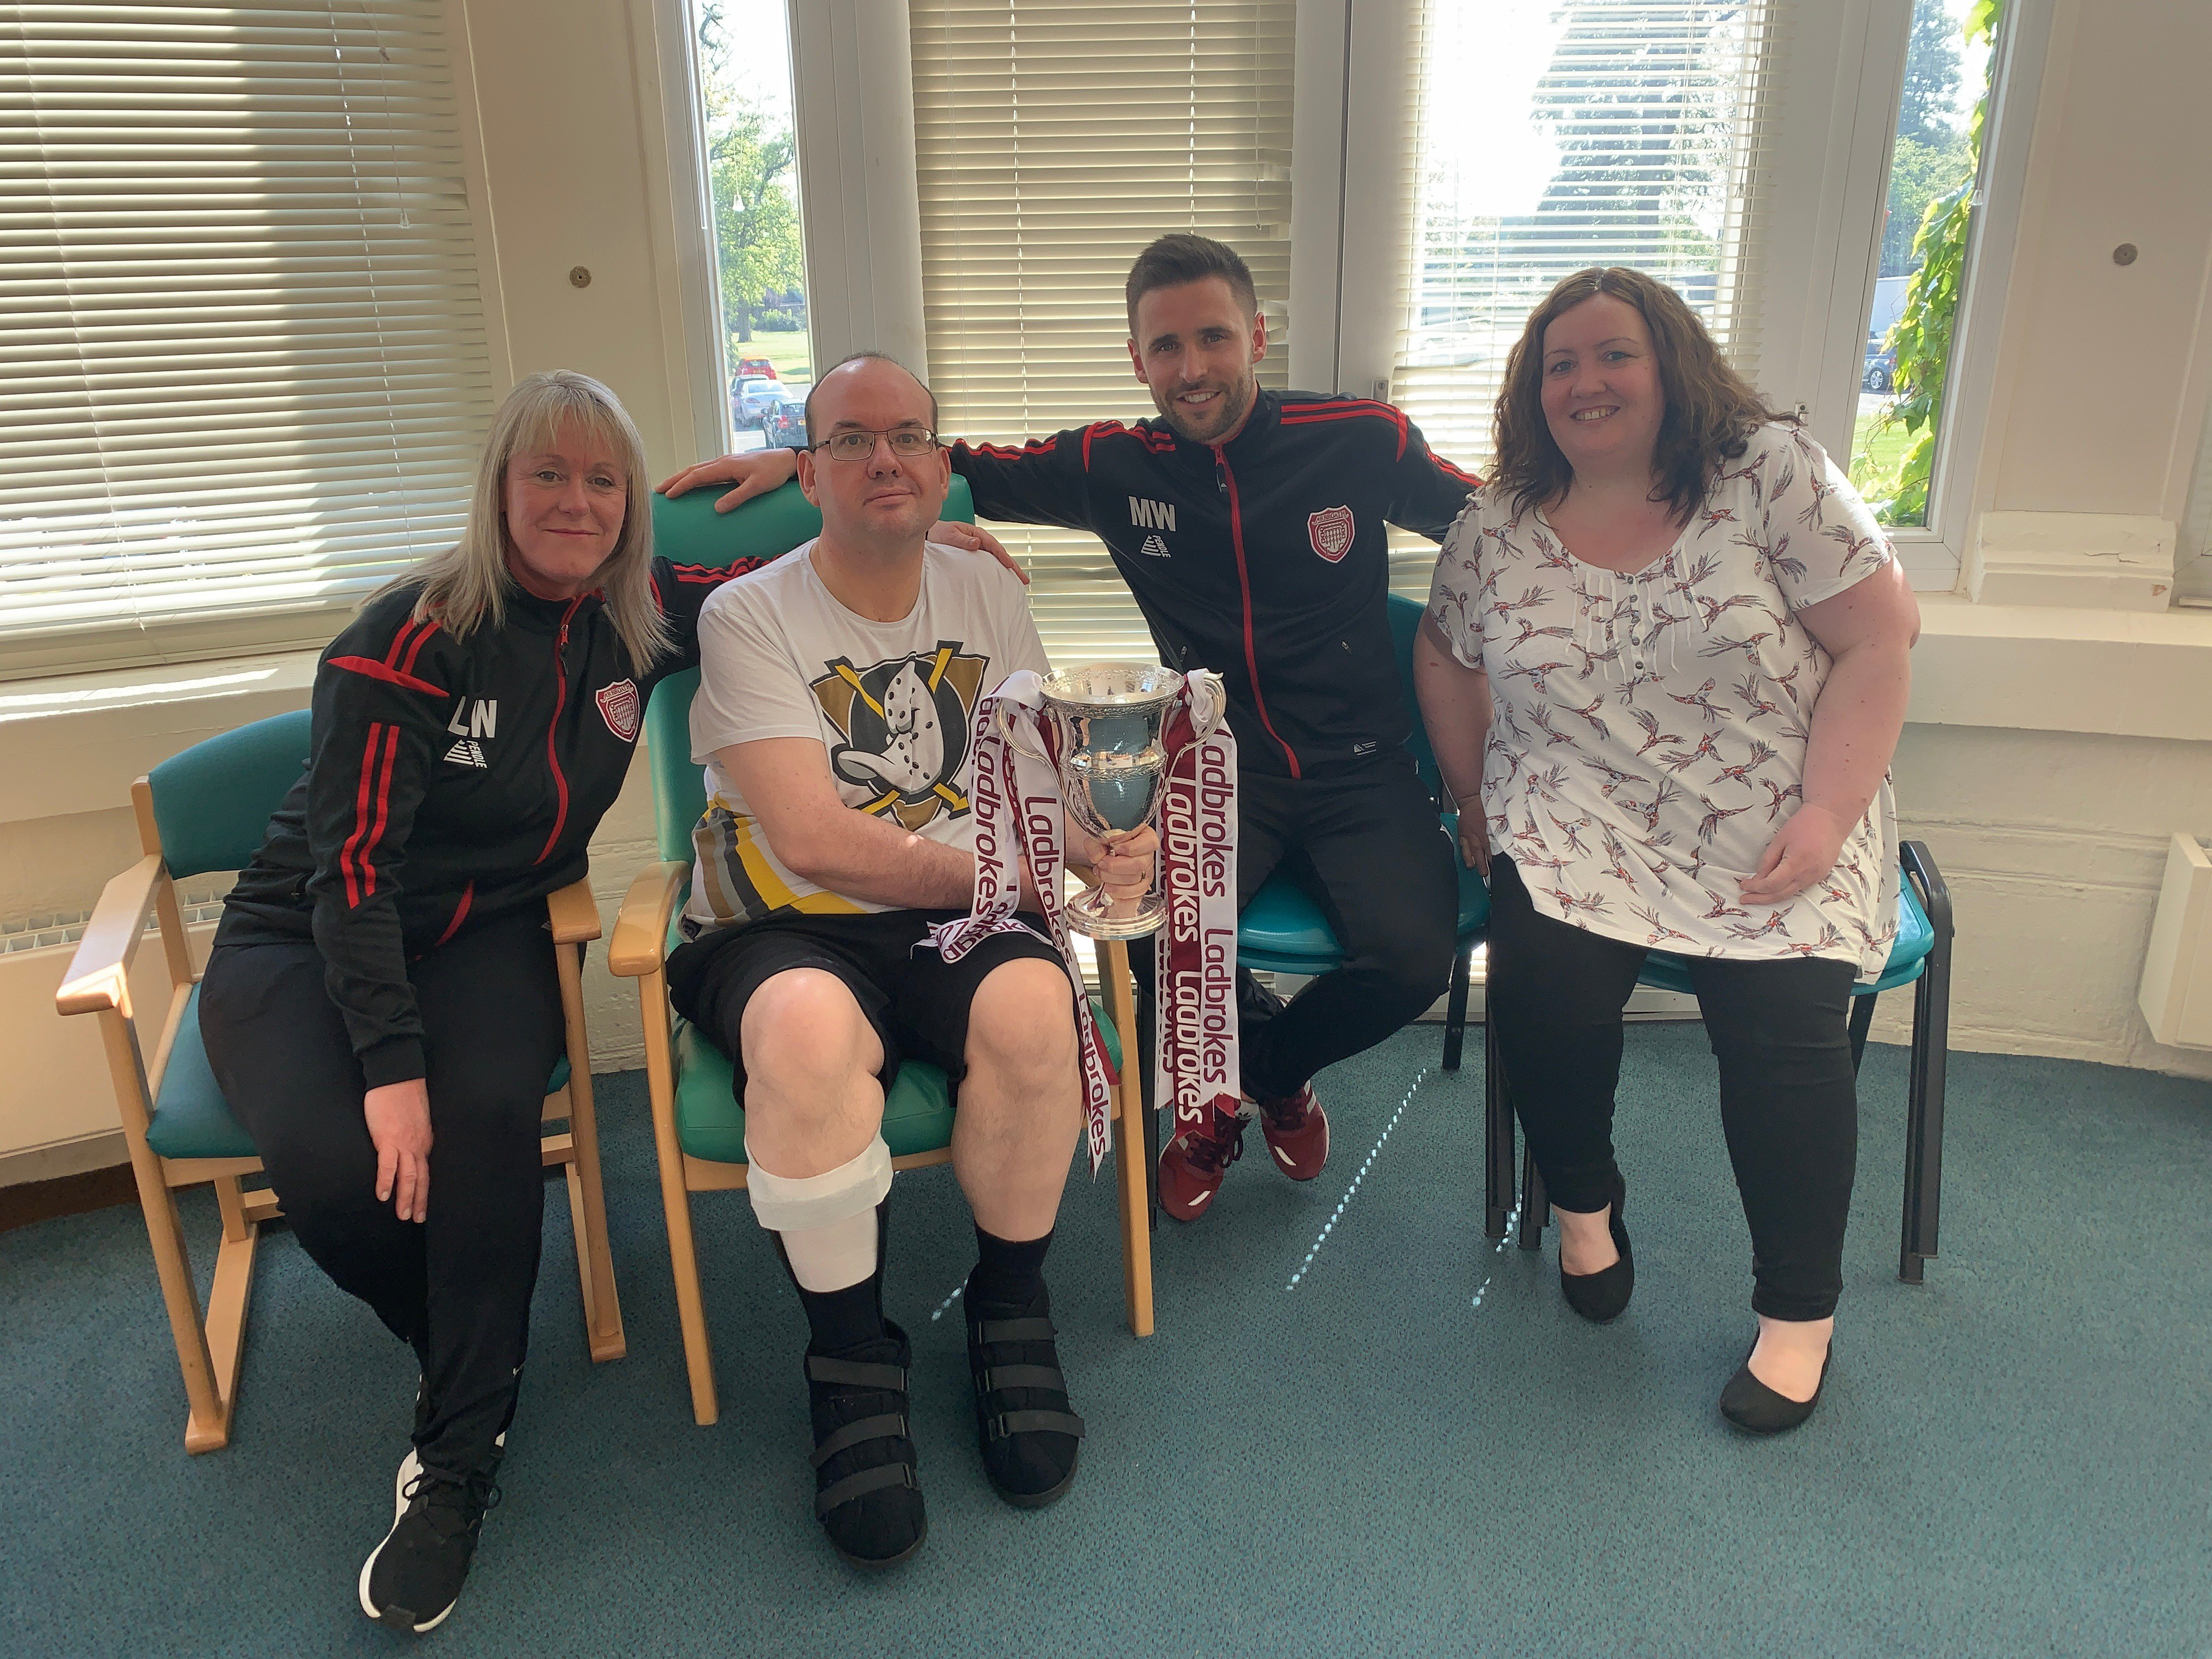 Neil and wife Natasha with club captain Mark Whatley and Lichties operations and kit manager Louise Walker